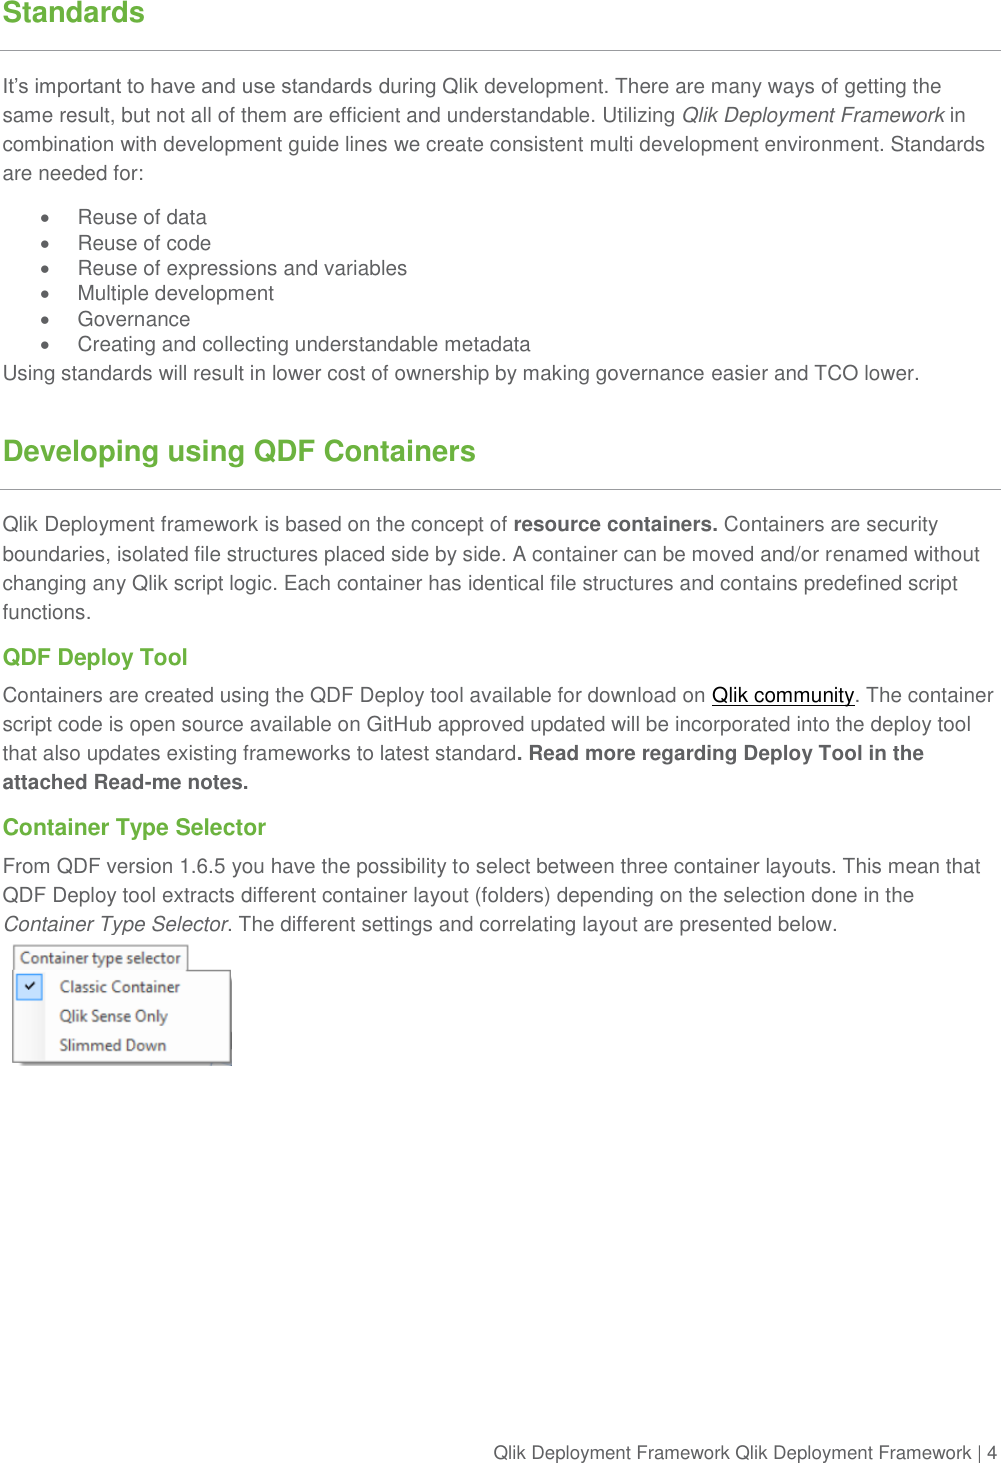 Qlik Deployment Framework Sense Development Guide